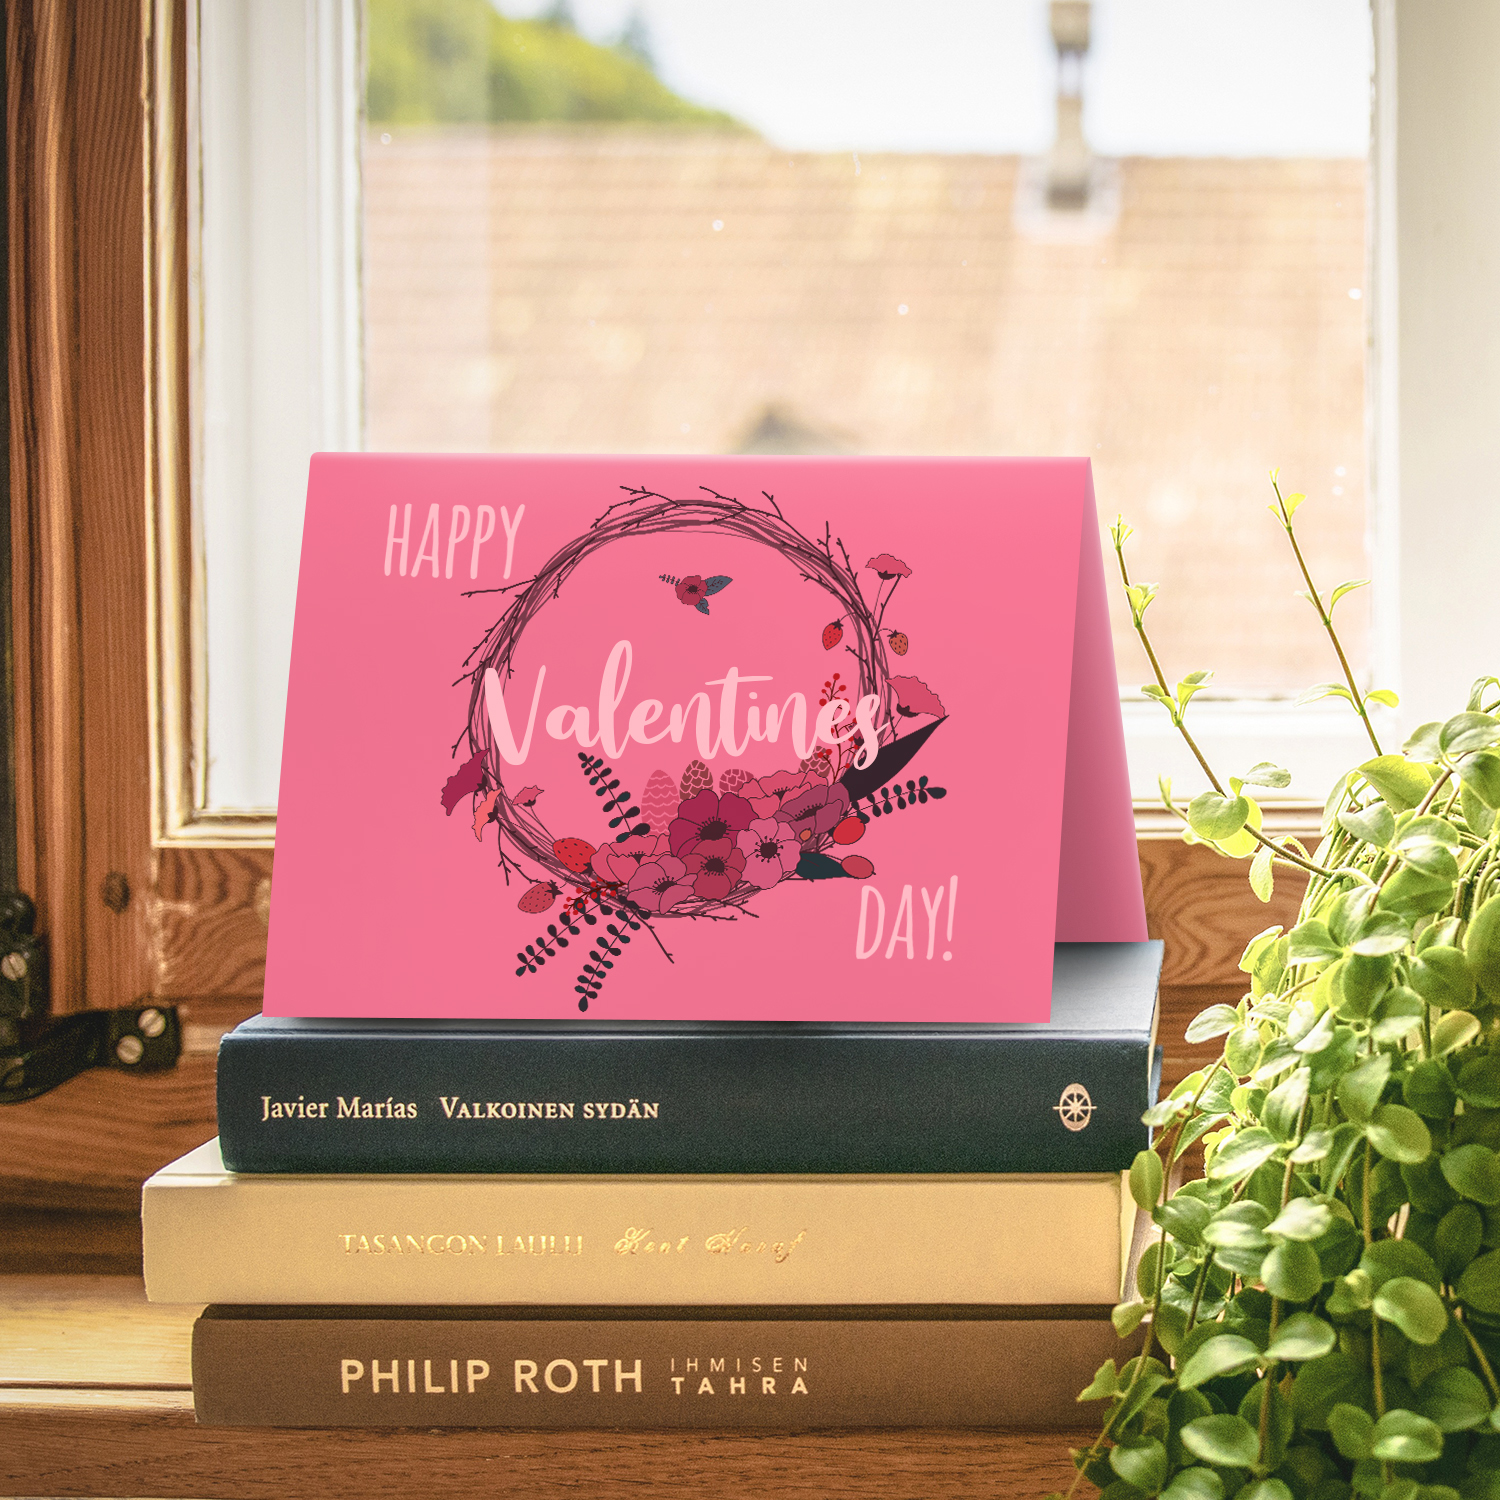 HOW TO CREATE A DIY VALENTINE'S CARD